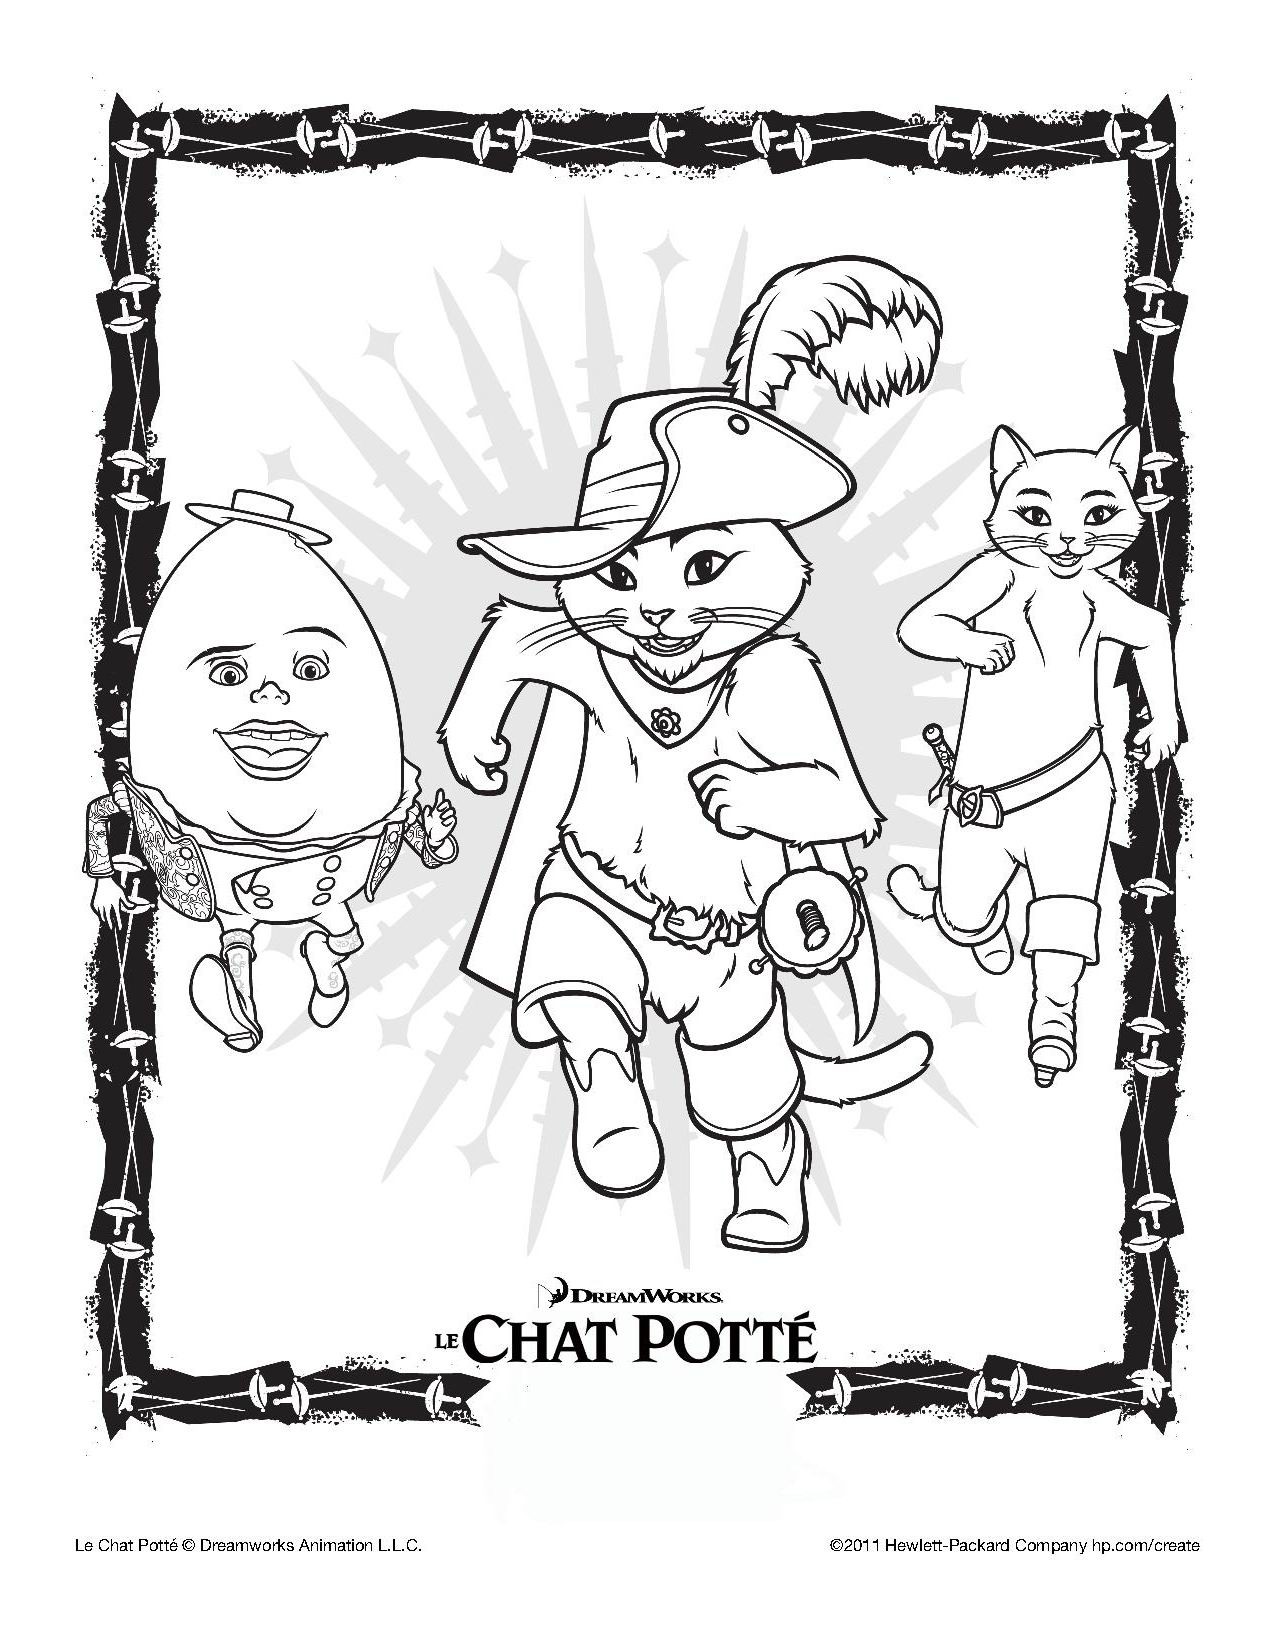 Inspirant Dessin A Colorier Du Chat Botte dedans Dessin Du Chat Botté